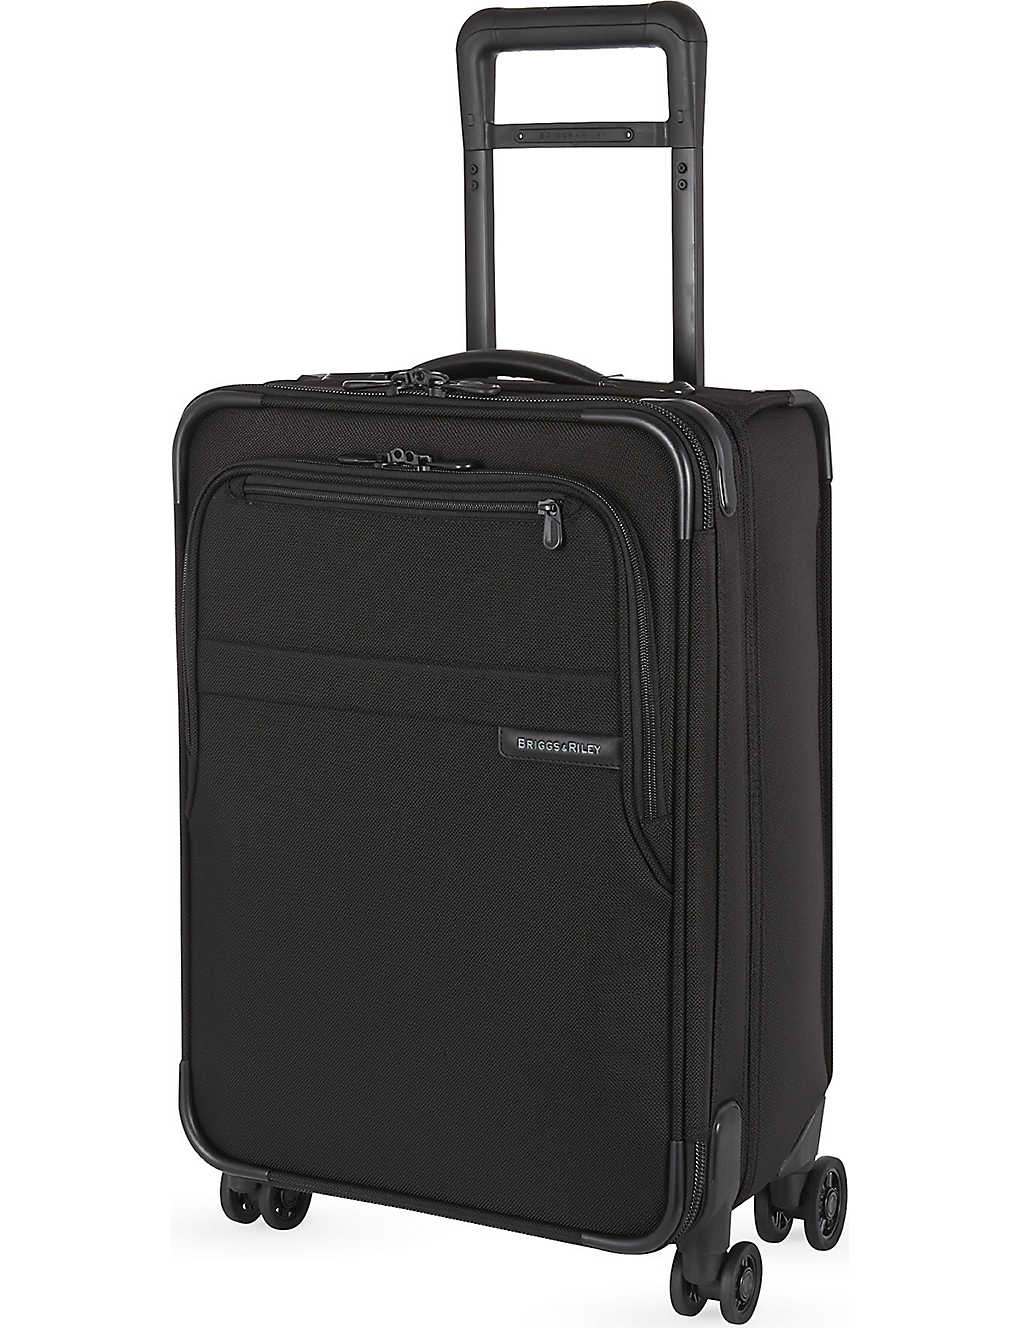 BRIGGS & RILEY: Domestic carry-on spinner suitcase 56cm